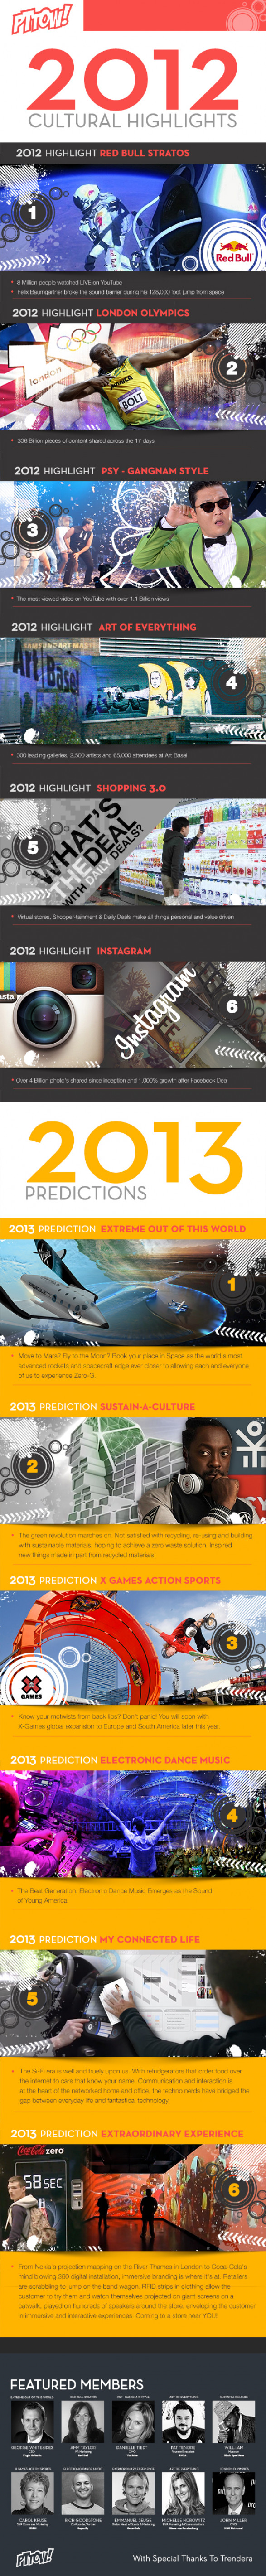 Highlights of 2012 & Predictions for 2013